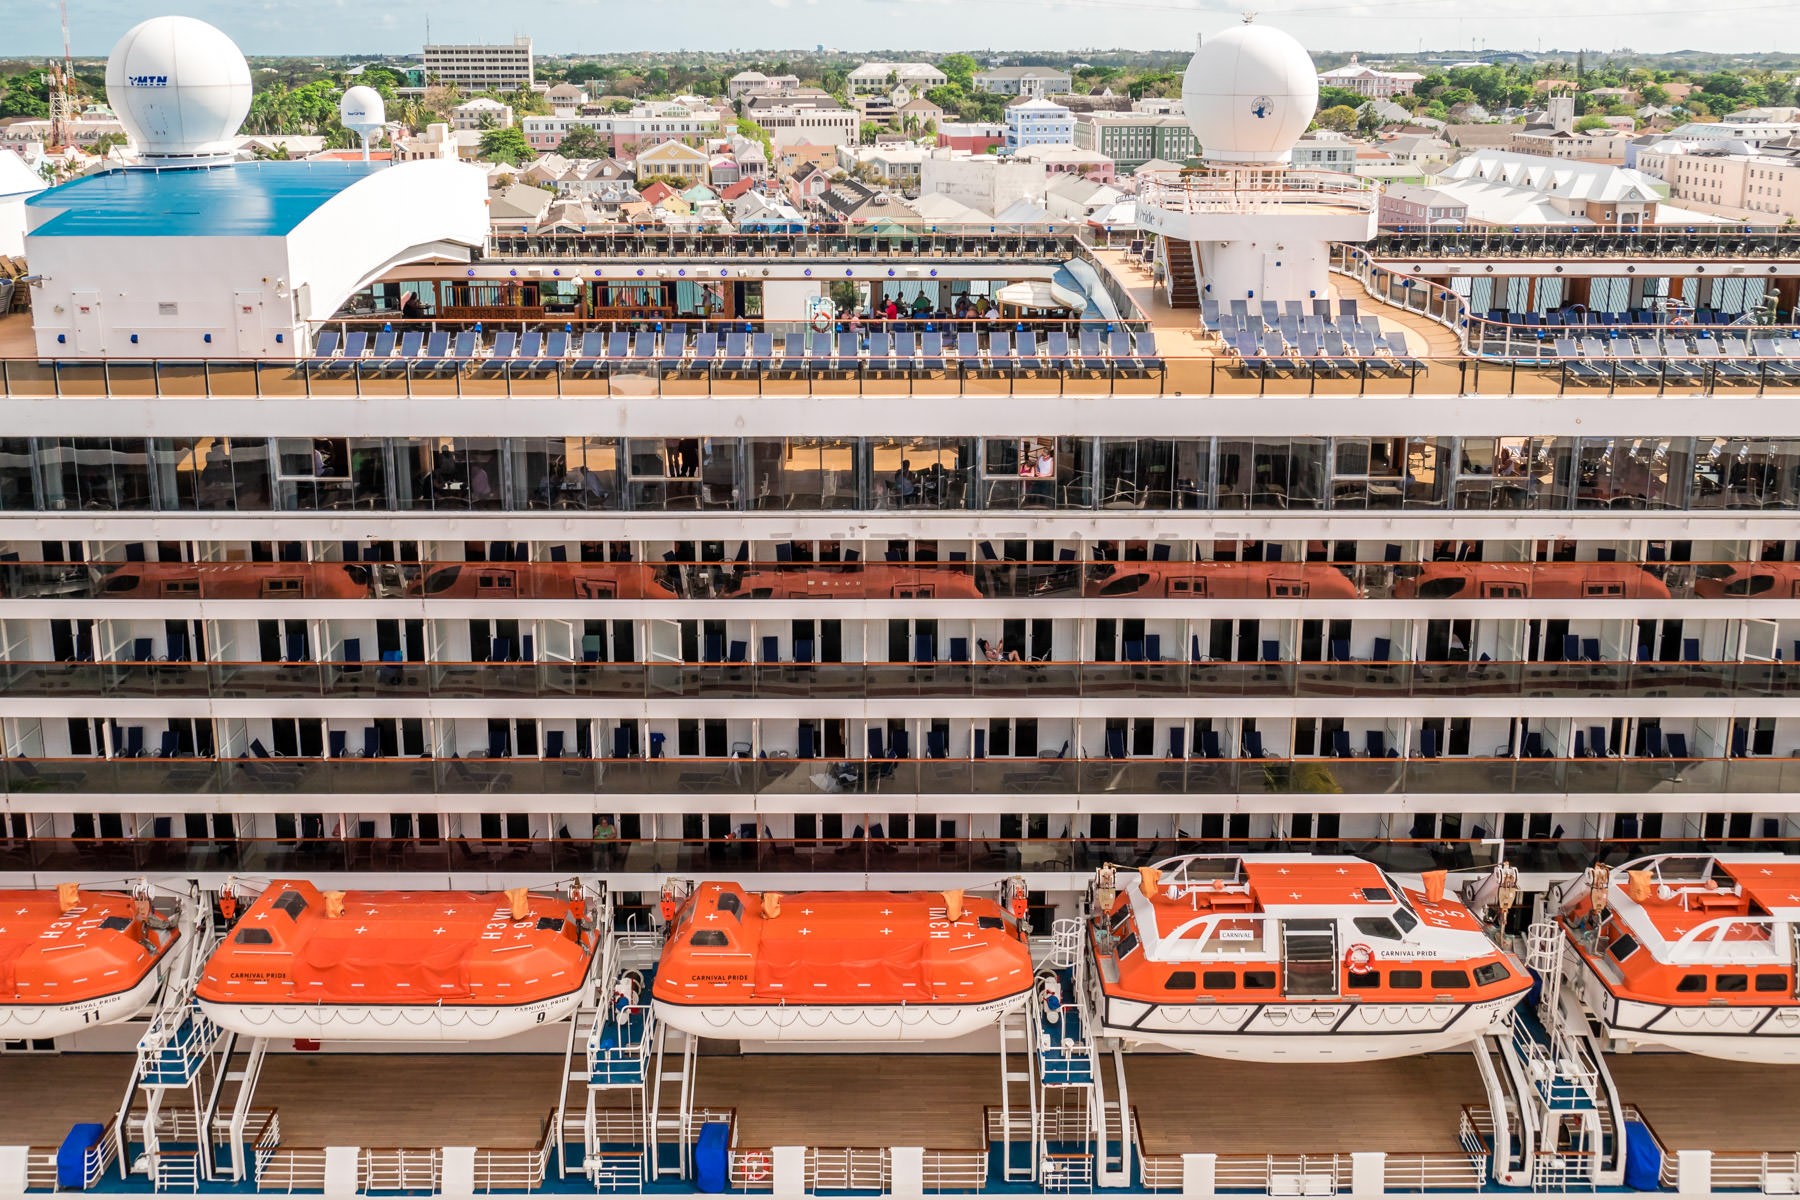 Detail of the midship section of the cruise ship Carnival Pride, docked in Nassau, Bahamas.